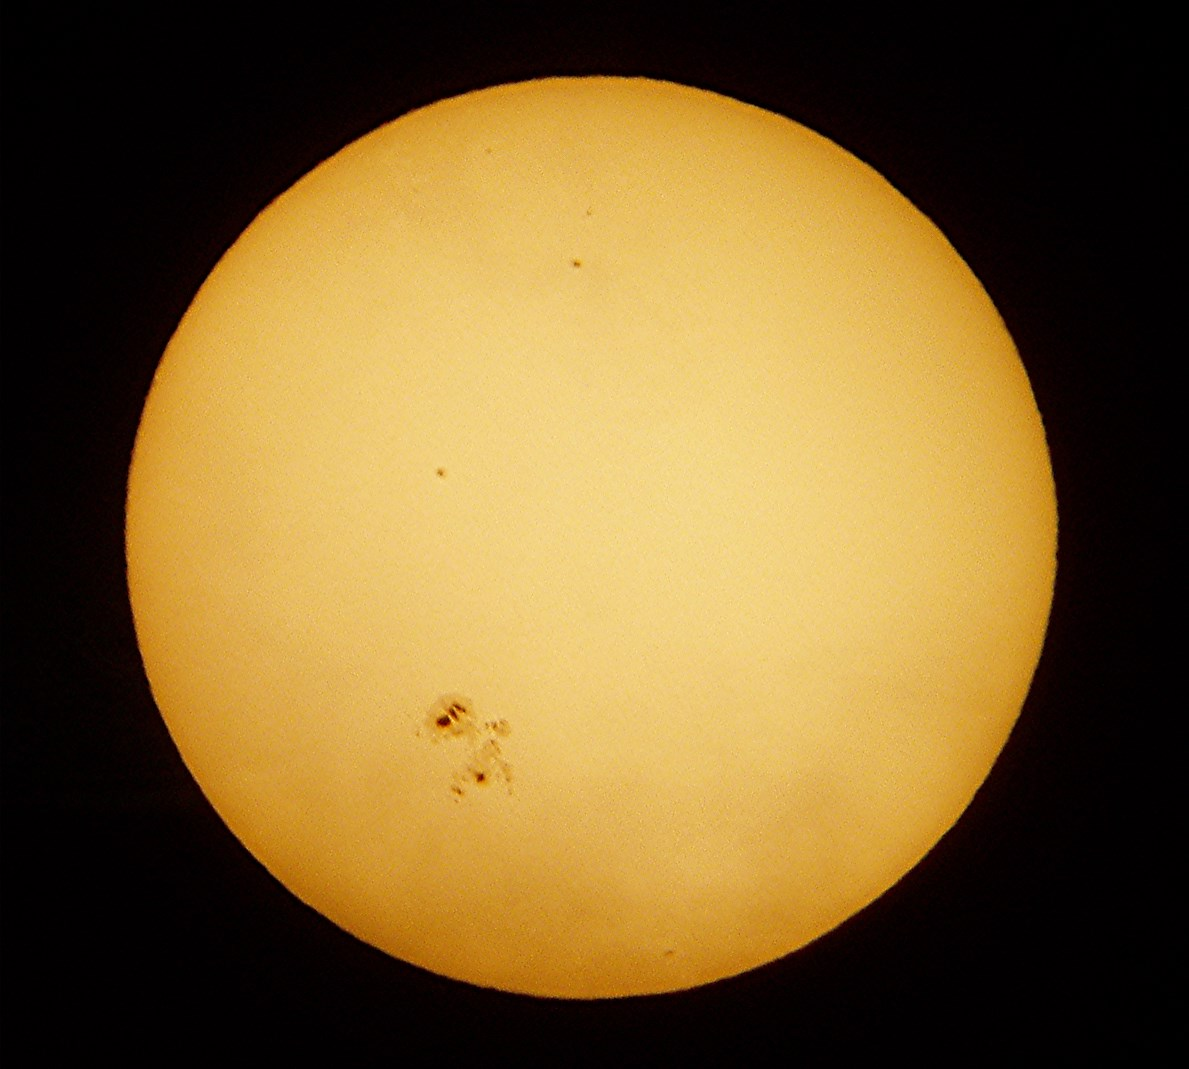 Sunspot Group AR 12192 of October 25, 2014. It was the largest sunspot in 24 years. Olympus Digital Camera. Photo Credit Dan Pedan